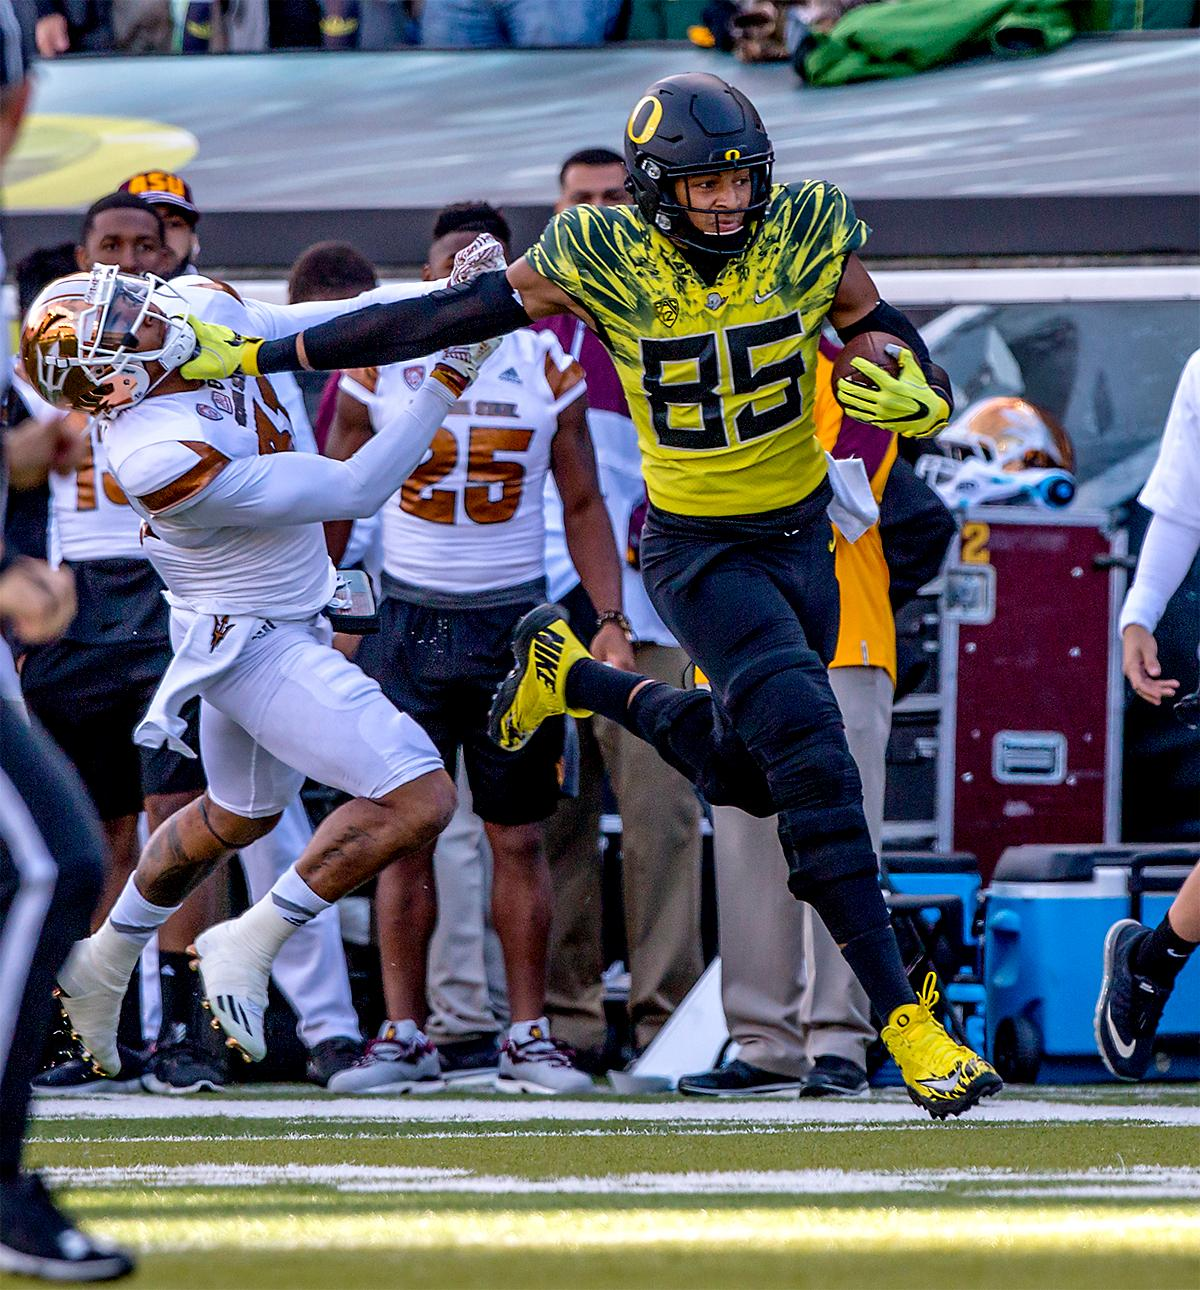 The Duck's Pharaoh Brown (#85) runs the ball in for a touchdown. The Oregon Ducks broke their losing streak by defeating the ASU Sun Devils on Saturday 54-35. Photo by August Frank, Oregon News Lab